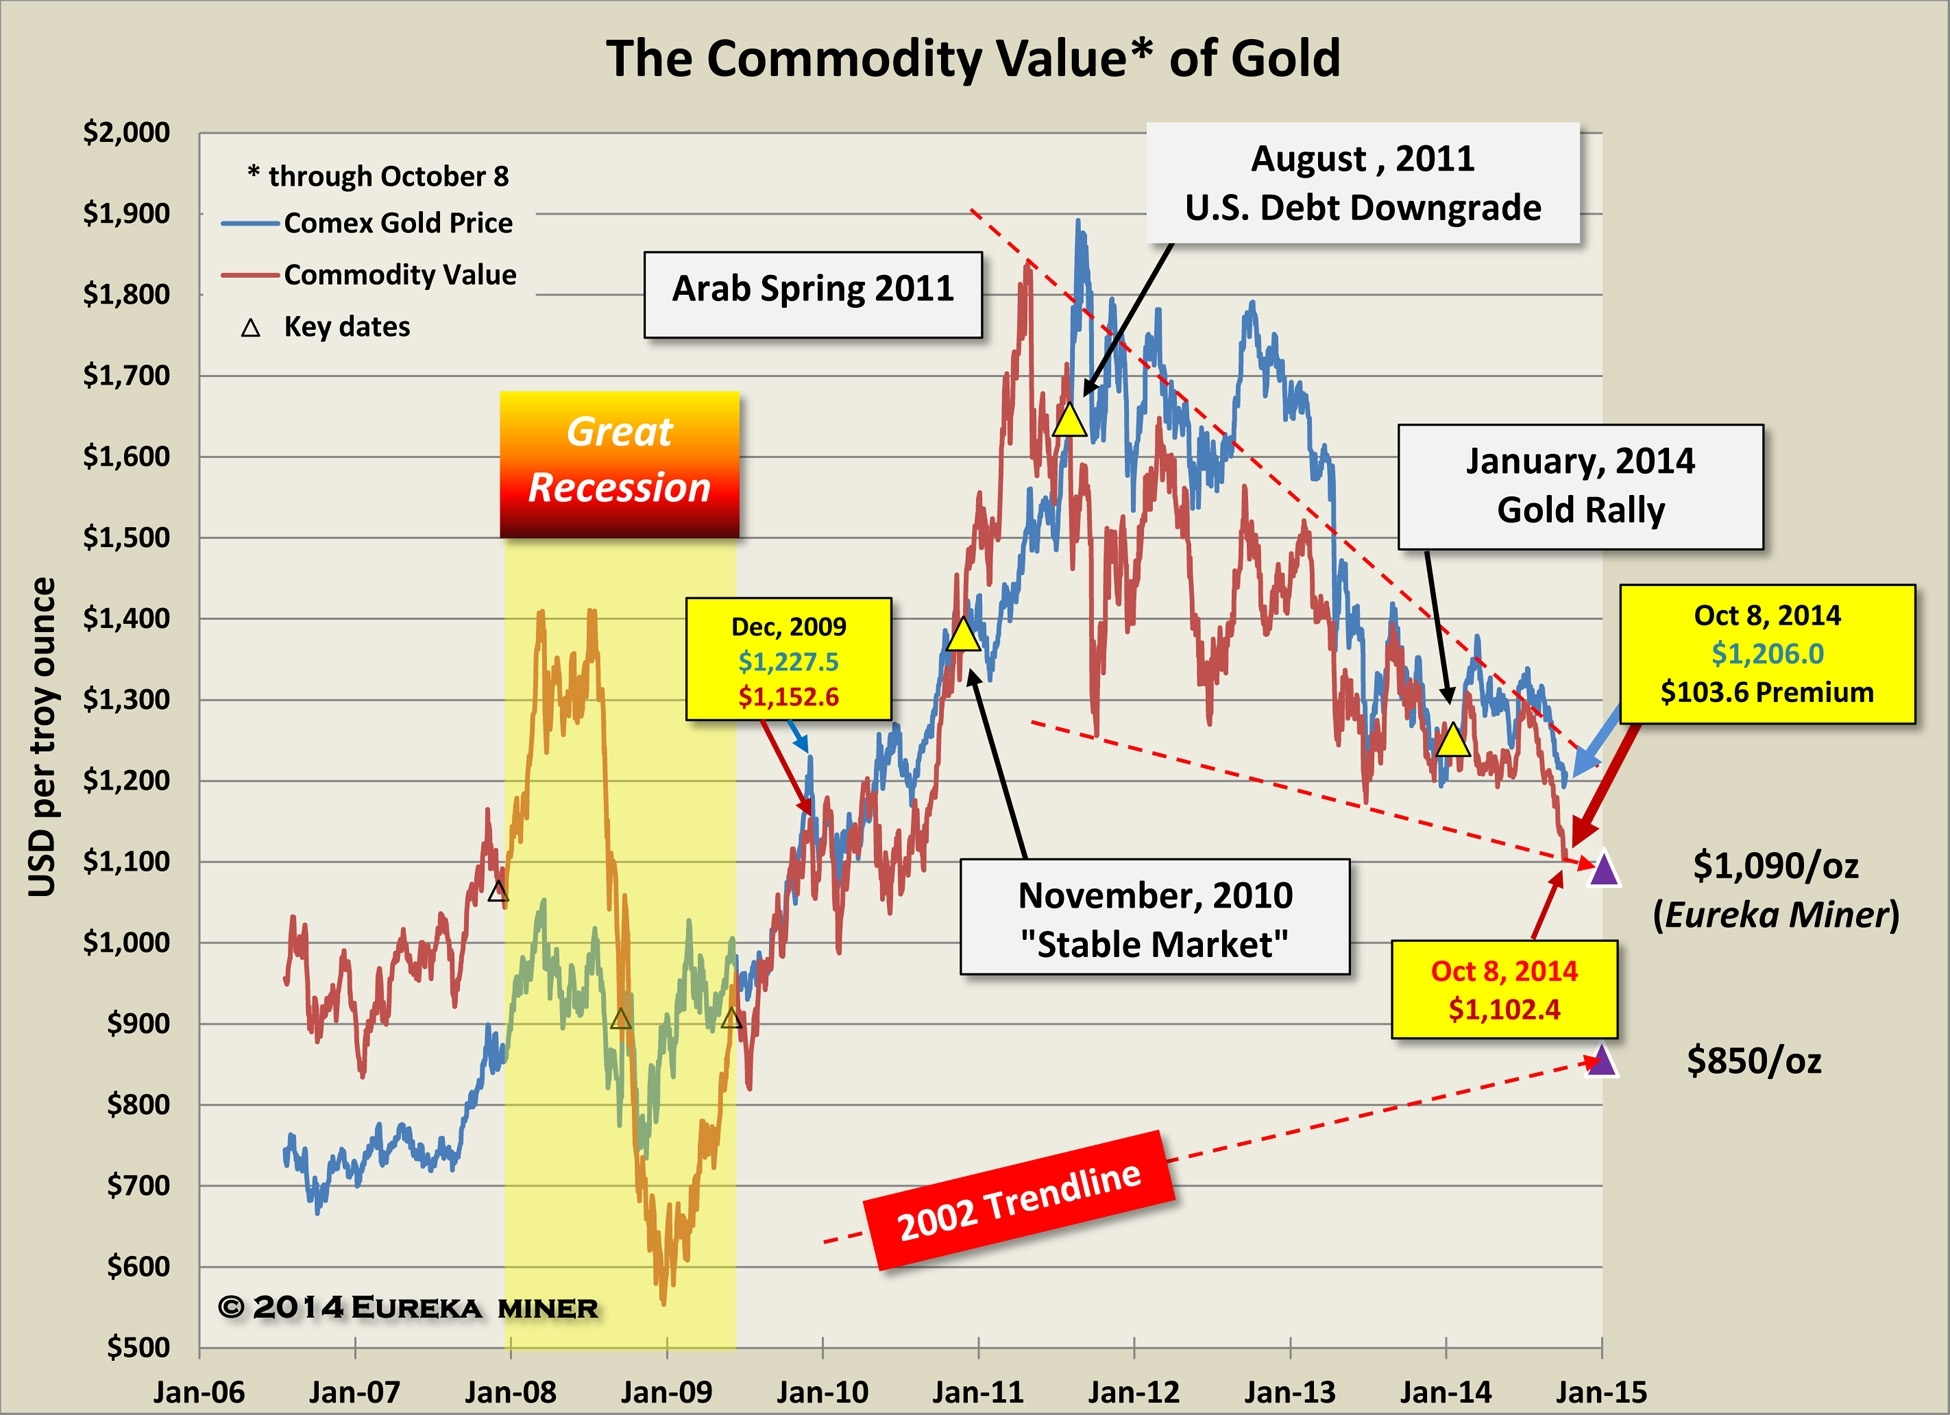 financial crisis set stage for gold rally news image courtesy of richard baker editor eureka miner click to enlarge